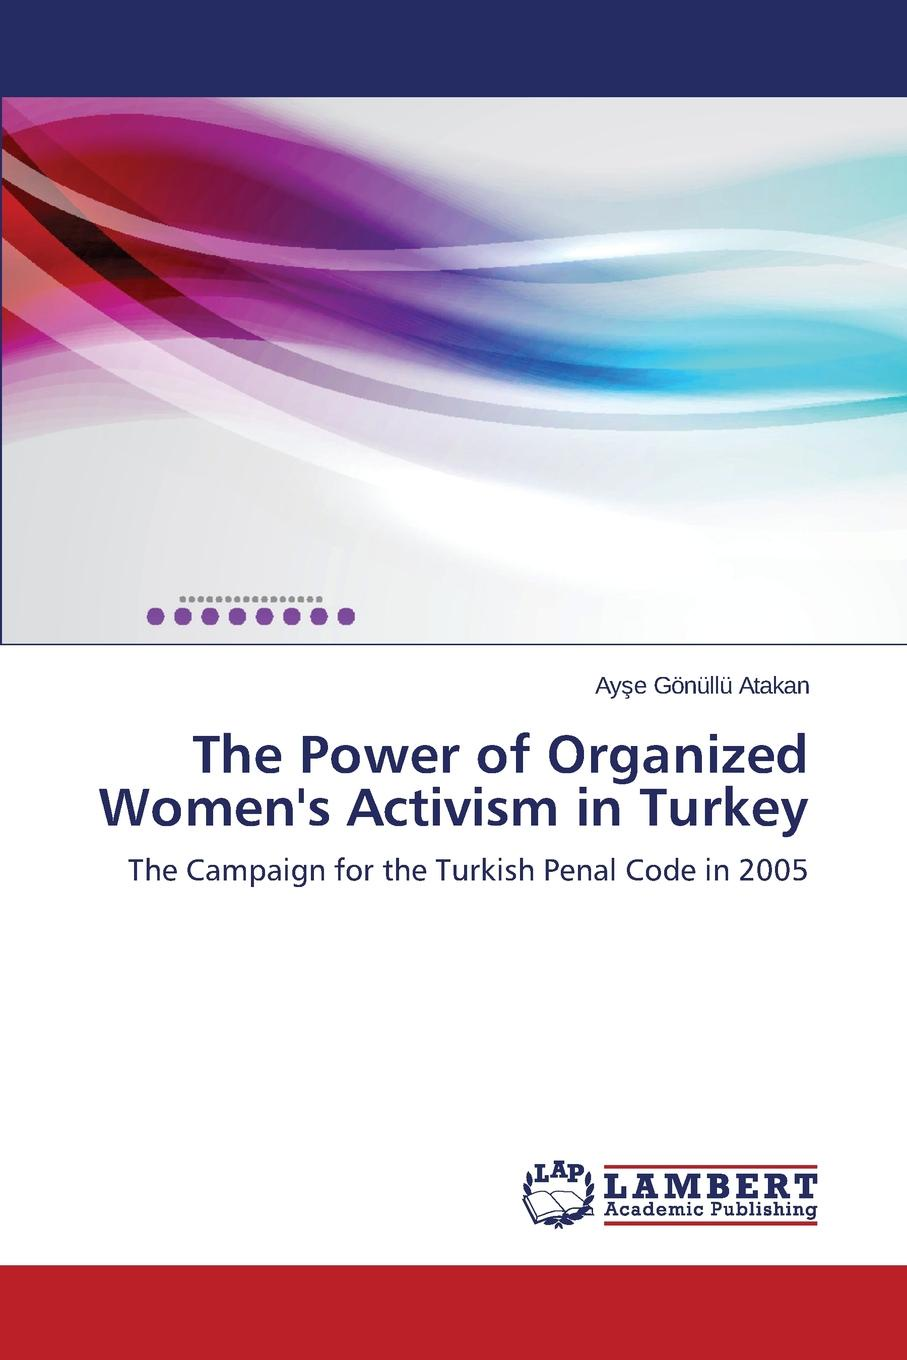 Gönüllü Atakan Ayşe The Power of Organized W Activism in Turkey